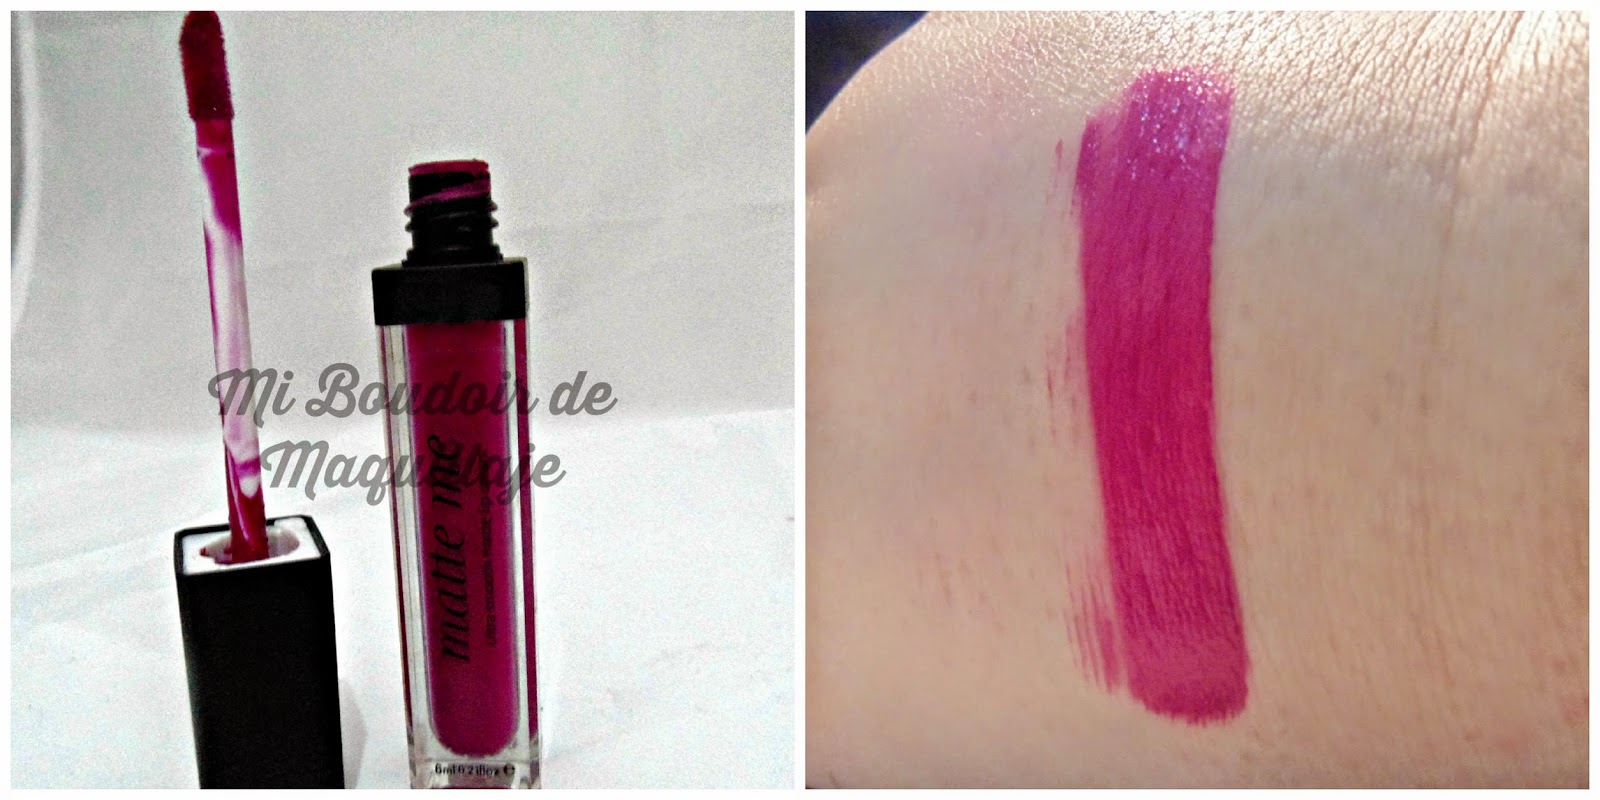 Labial Liquido de Sleek